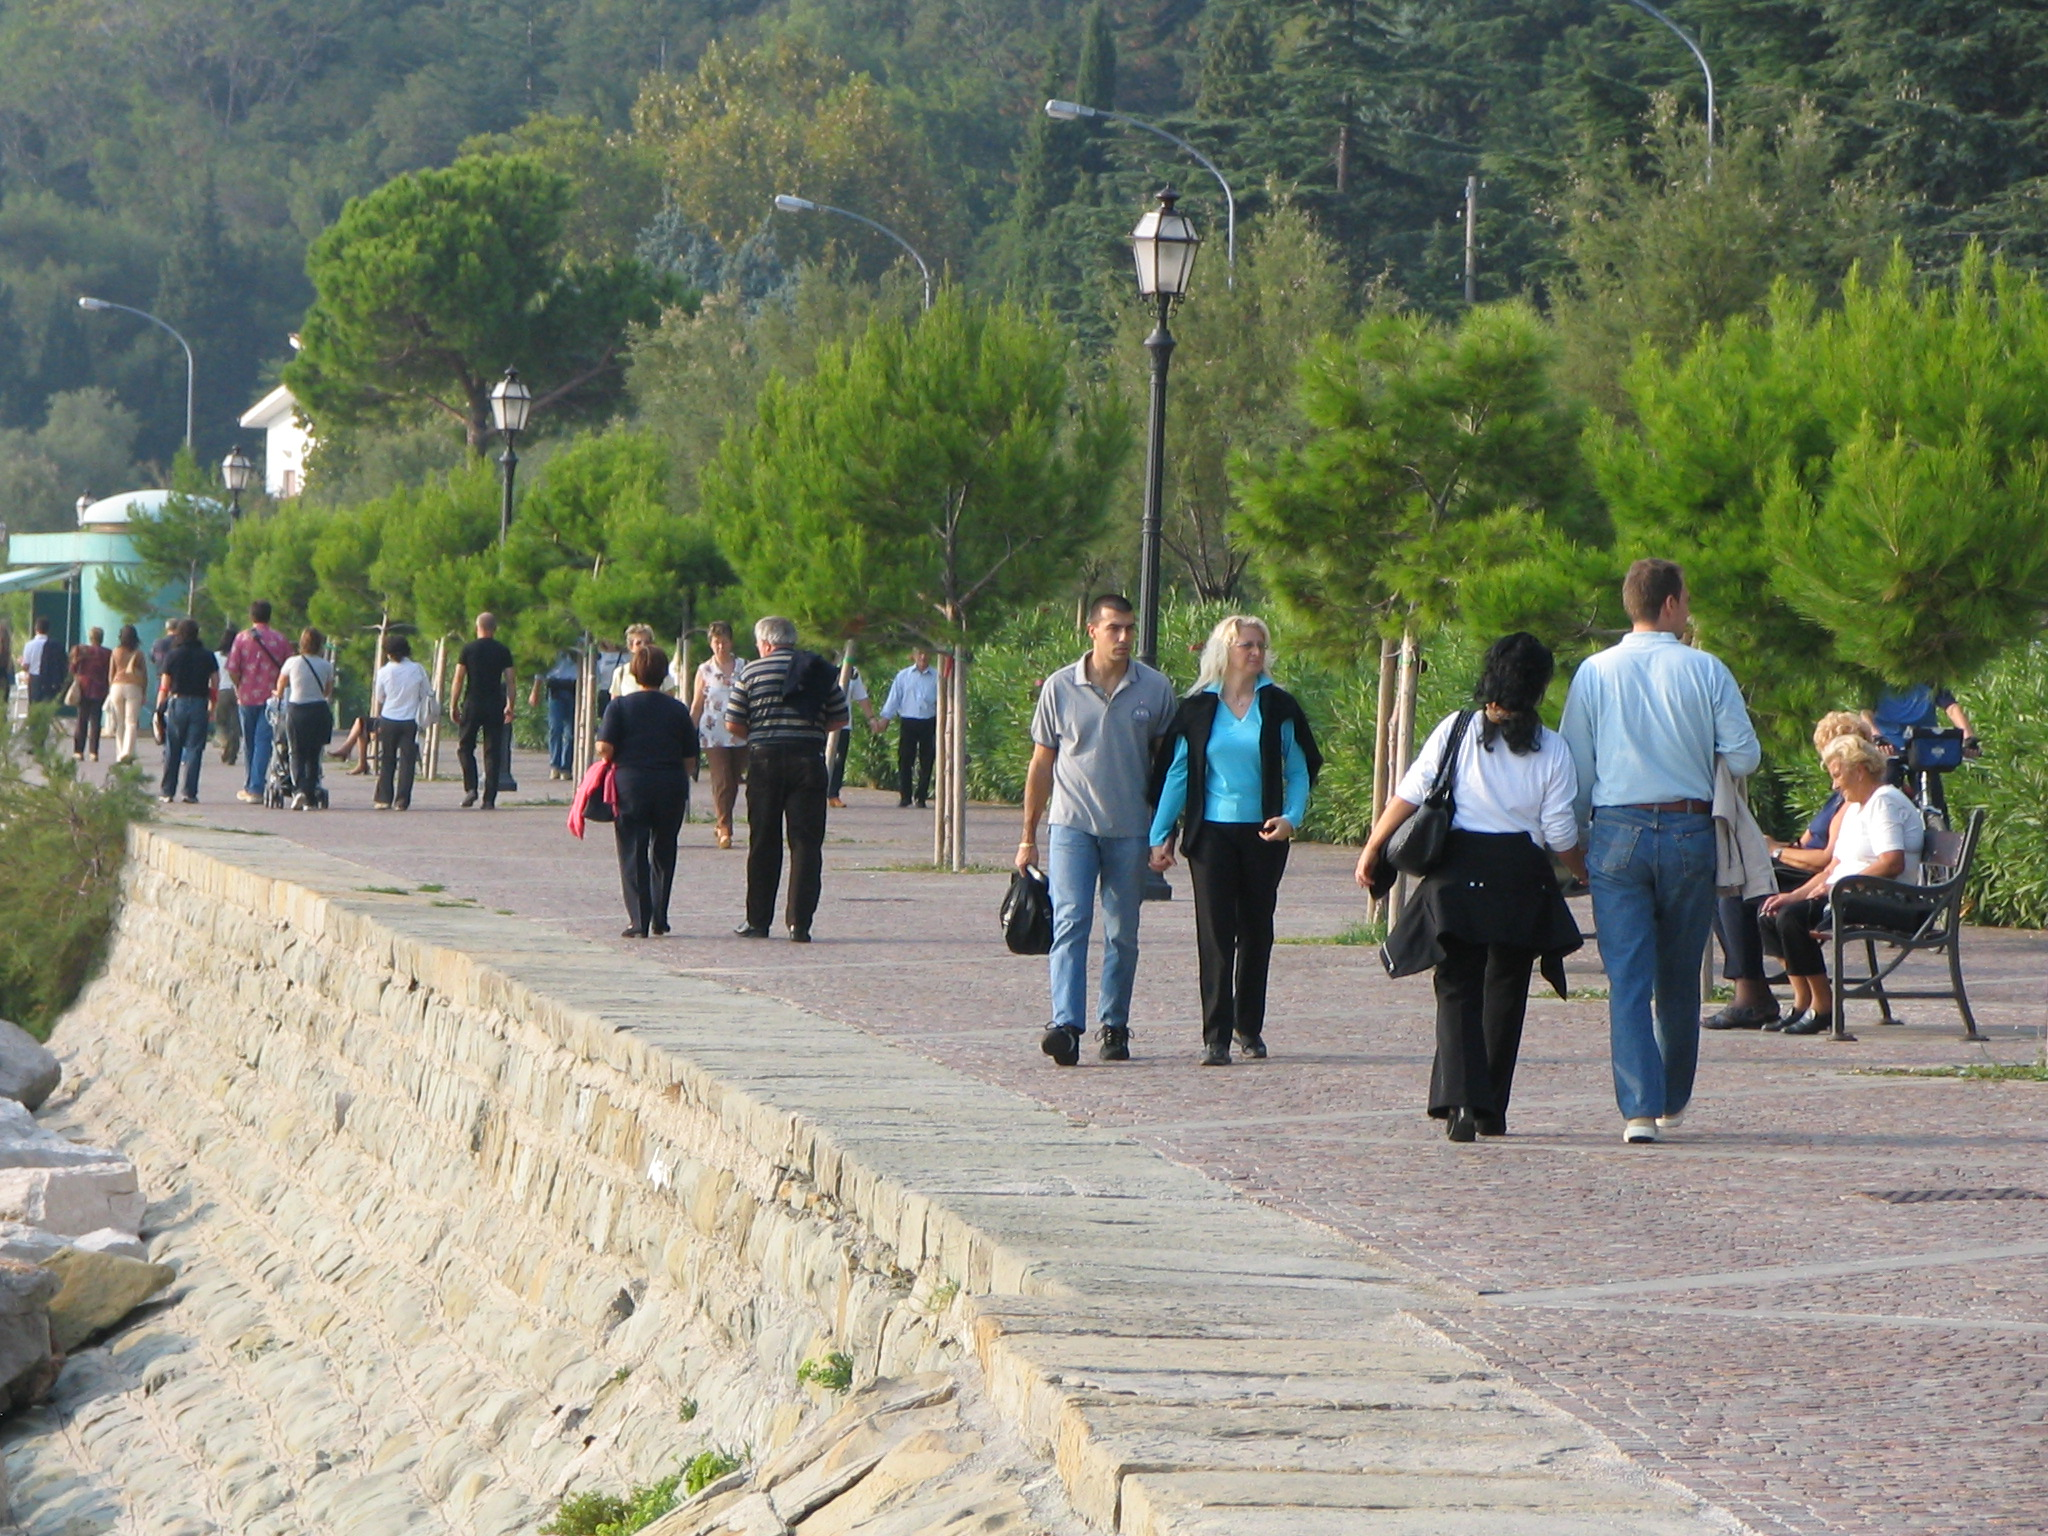 People strolling during Pasquetta